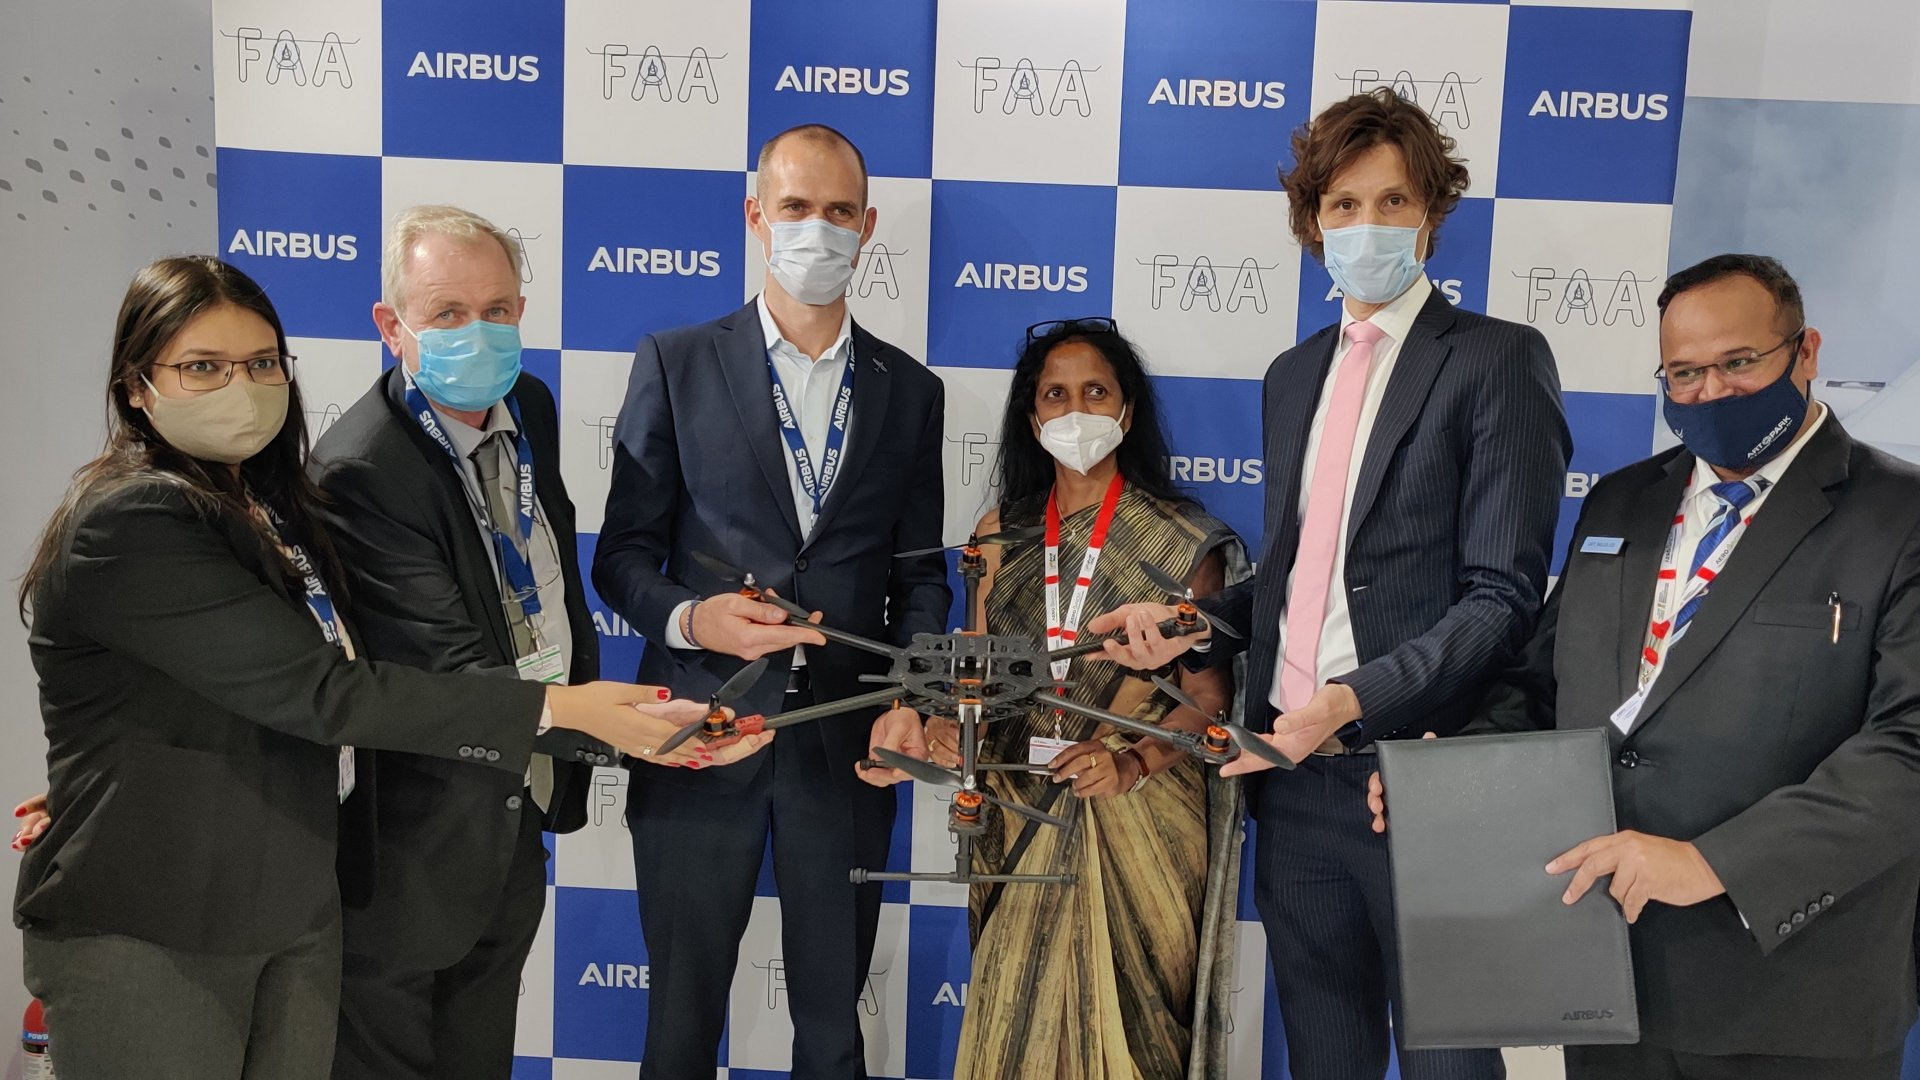 Airbus signed a Memorandum of Understanding (MoU) with Flytech Aviation Academy, a leading Indian aviation training academy, to explore collaboration opportunities in Remotely Piloted Aircraft System (RPAS) training.